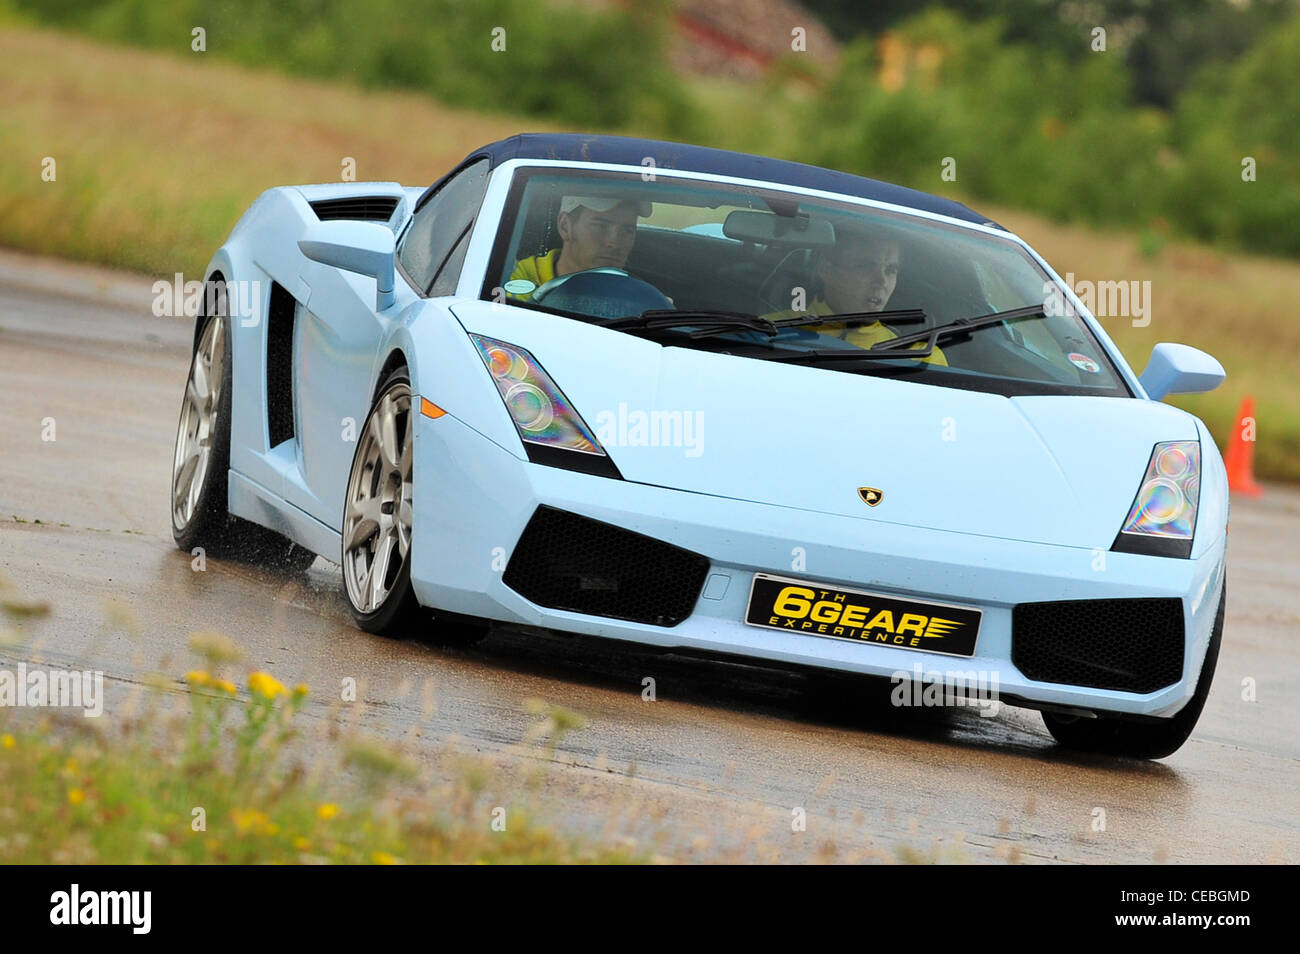 Supercars On Track Uk Lamborghini Gallardo Stock Photo 43280509 Alamy